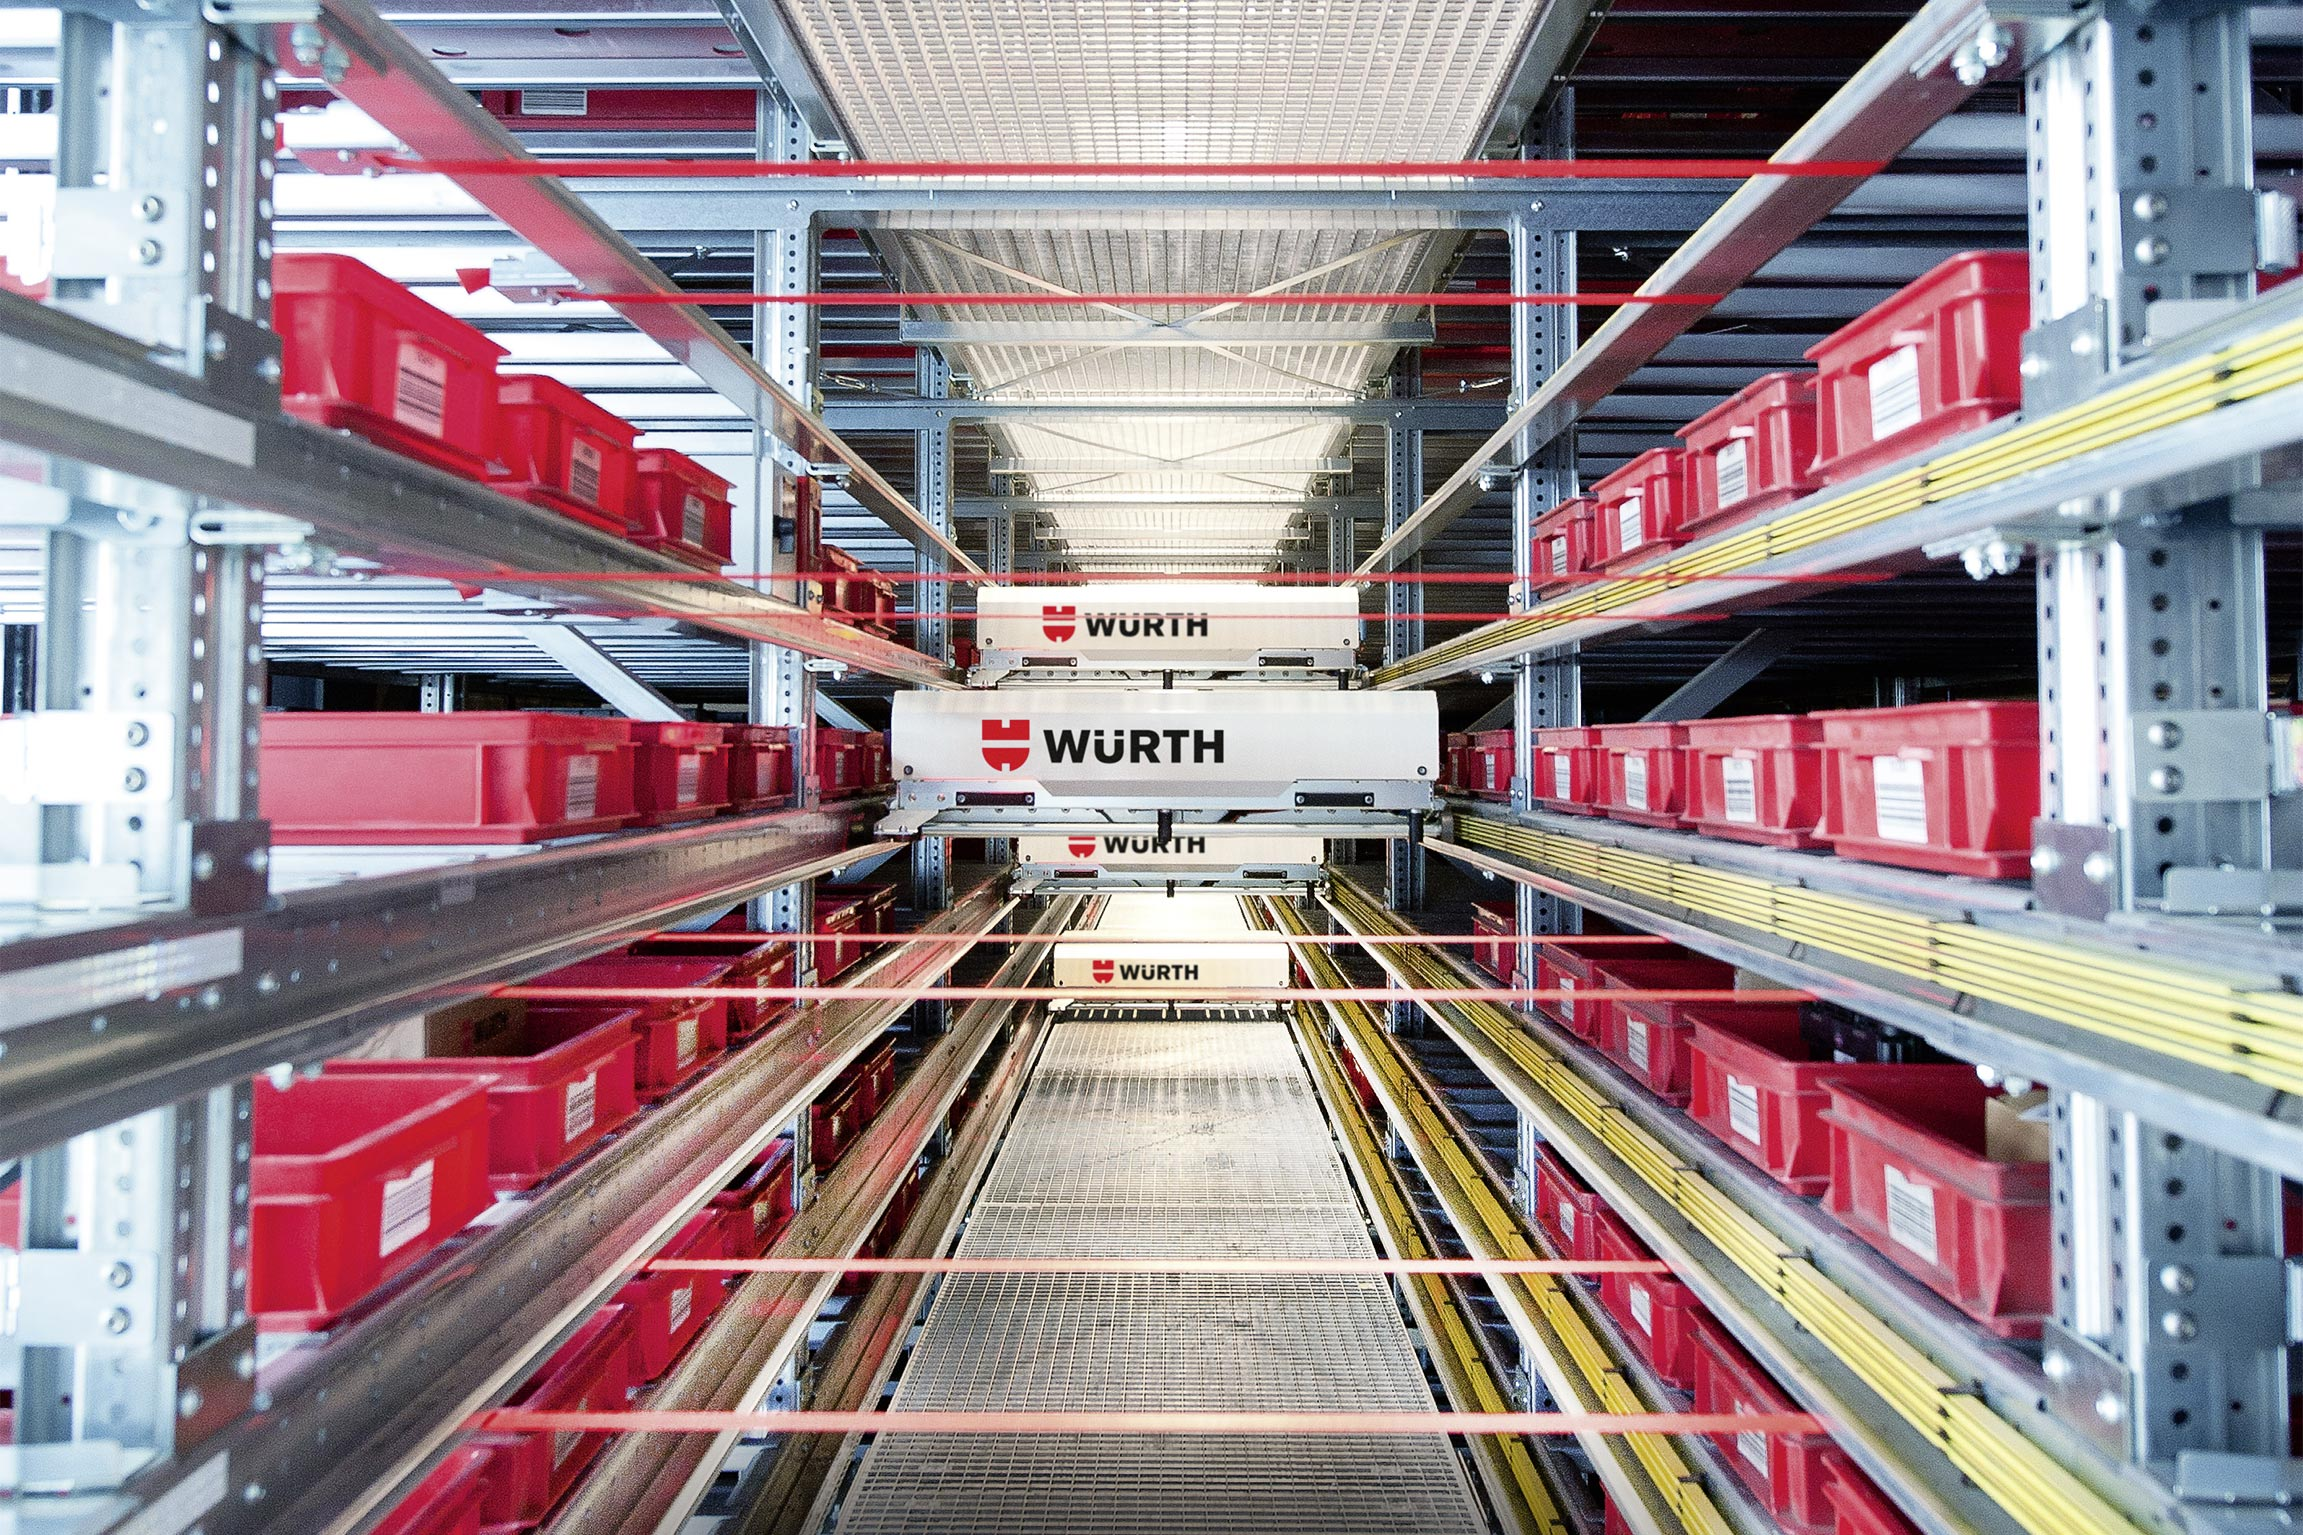 Würth Industrie Service GmbH & Co. KG, Bad Mergentheim: The Kanban logistics center at Industriepark Würth – customized C-part management ensures maximum supply security for manufacturing companies.